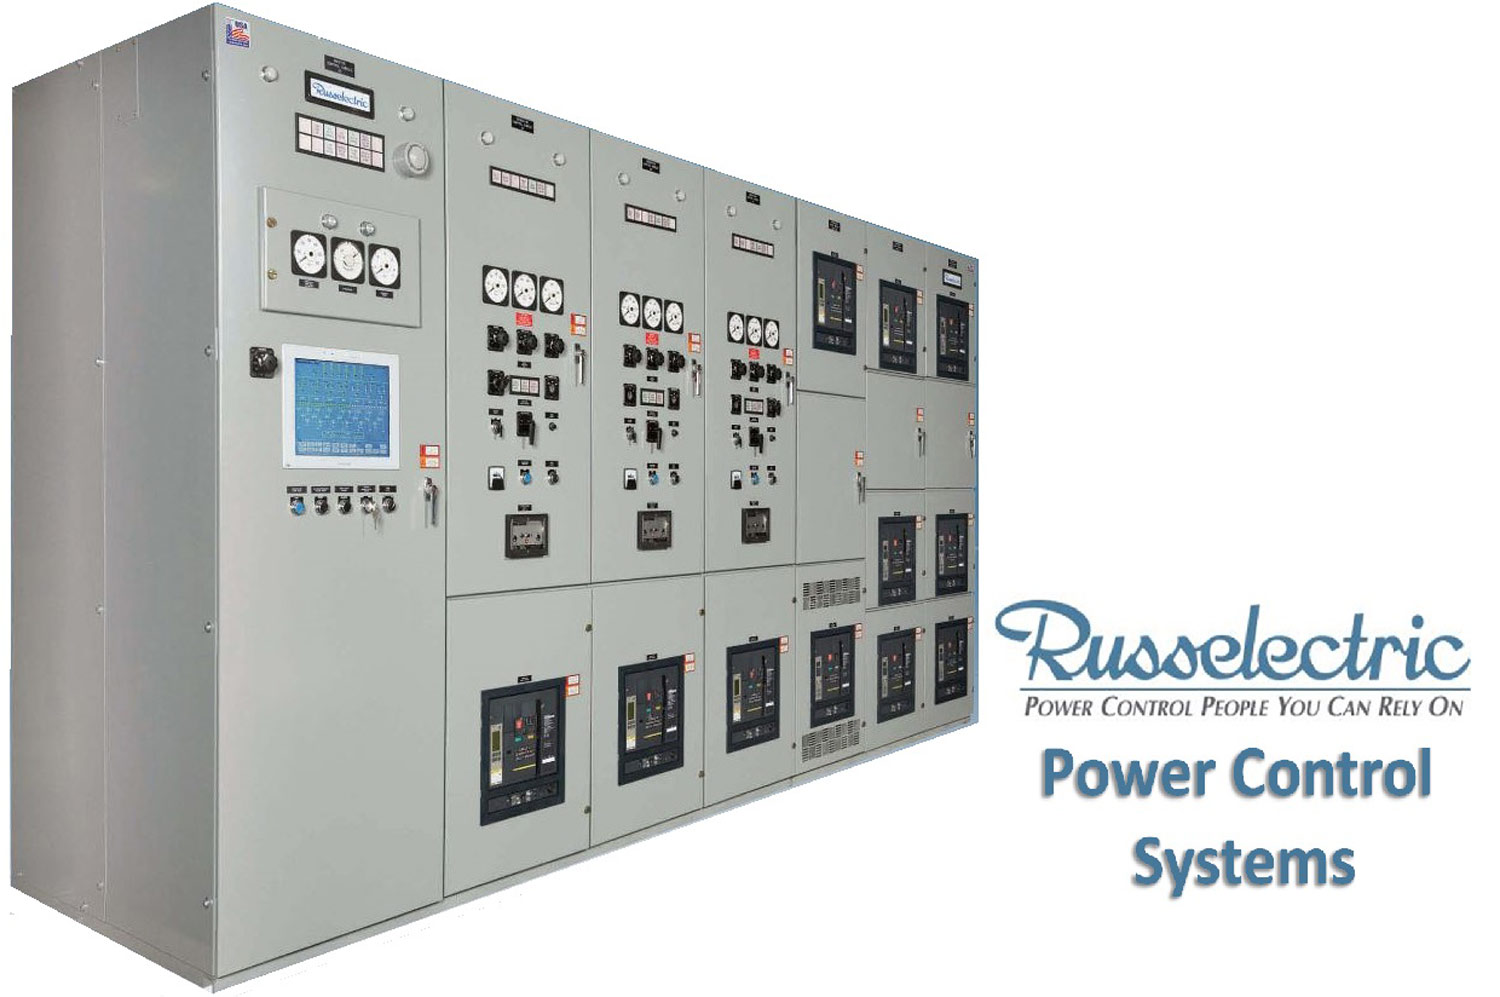 Russelectric Power Control Systems